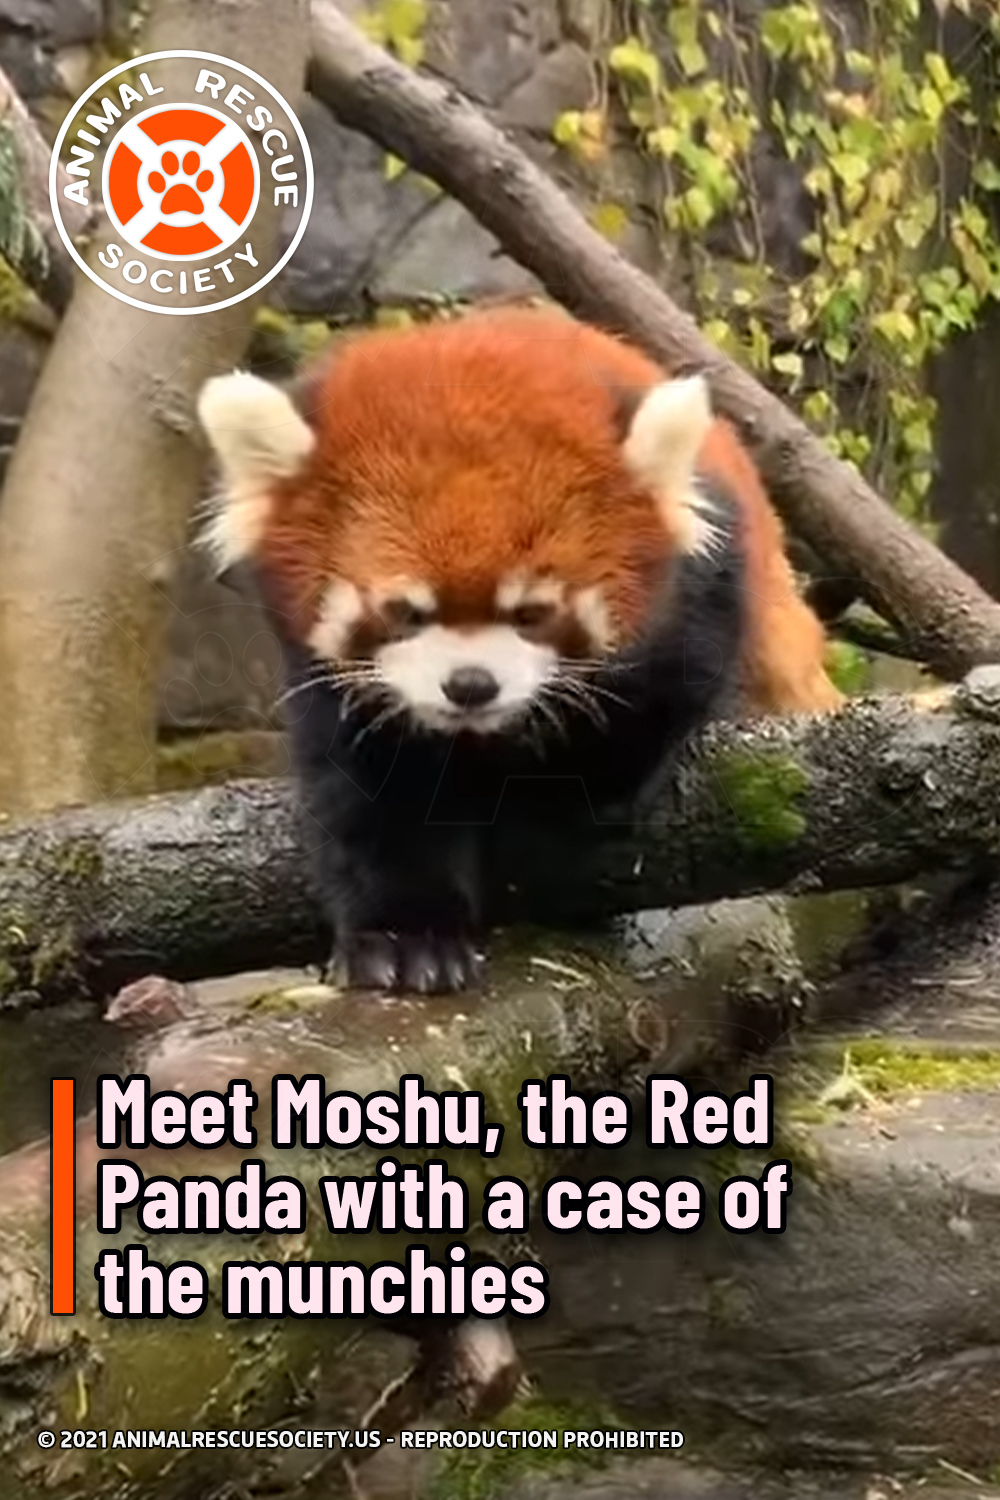 Meet Moshu, the Red Panda with a case of the munchies